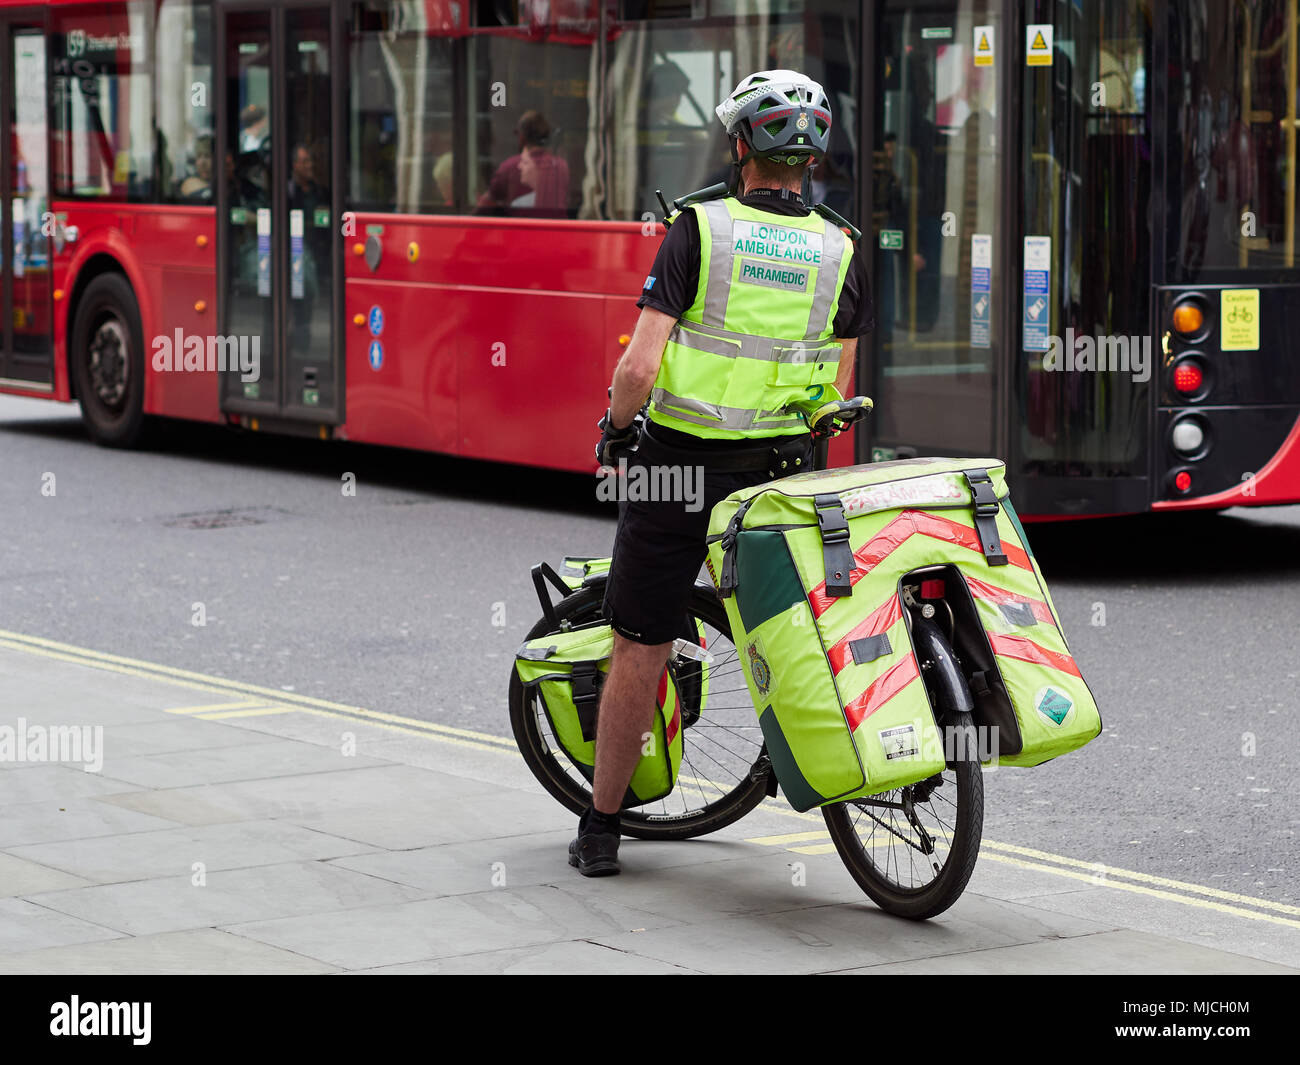 NHS London Ambulance Paramedic on a bicycle in London, UK. 2018. Rear view in front of red London bus. Stock Photo